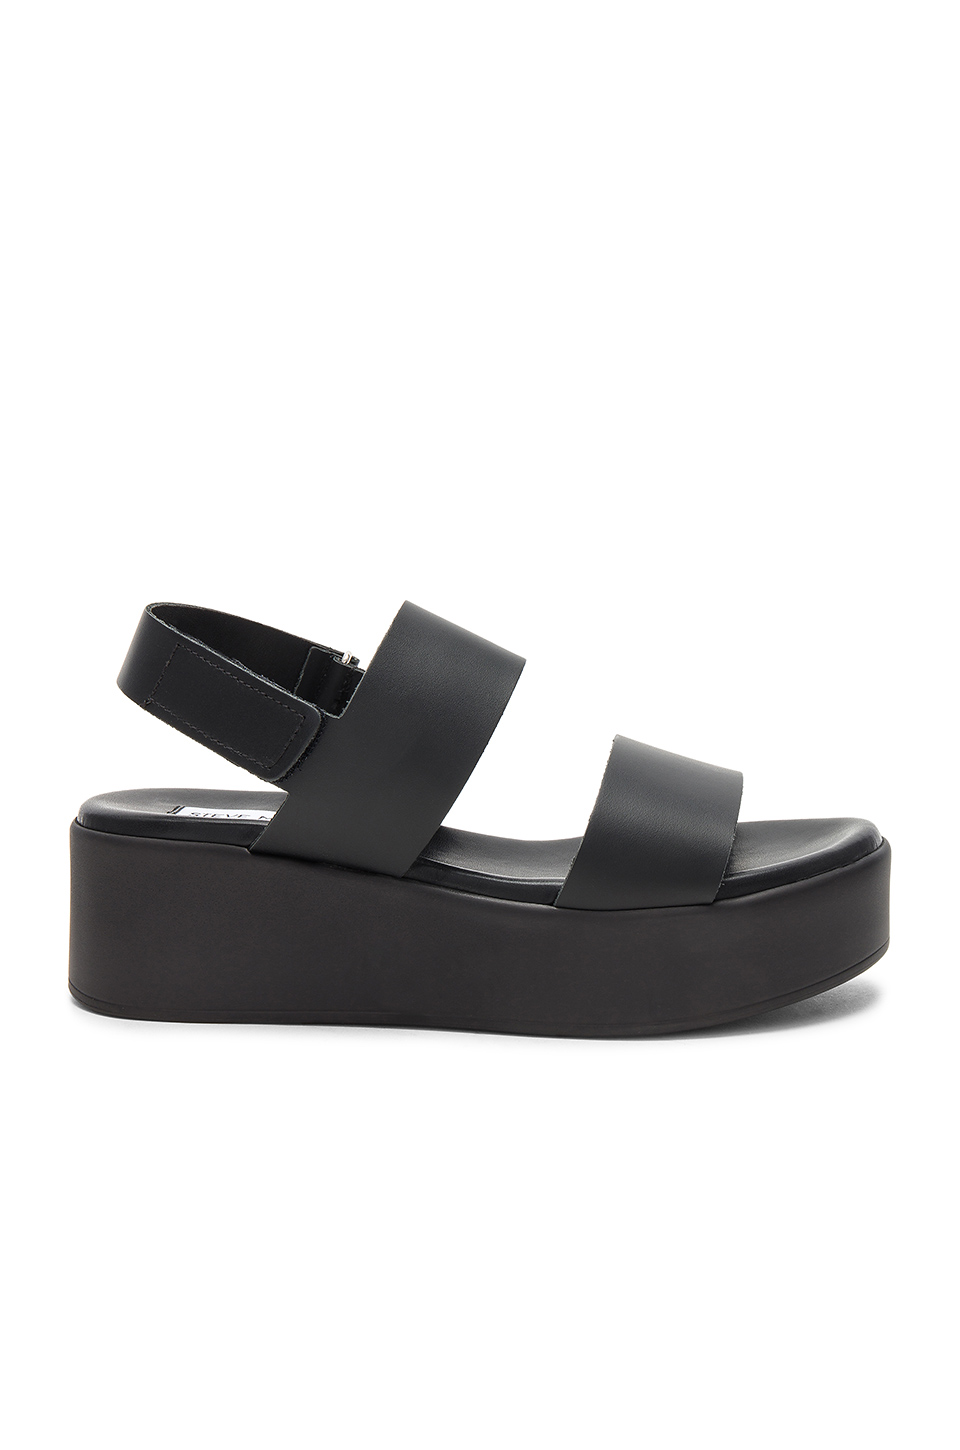 8577954afef Buy Original Steve Madden Rachel Platform Sandal at Indonesia